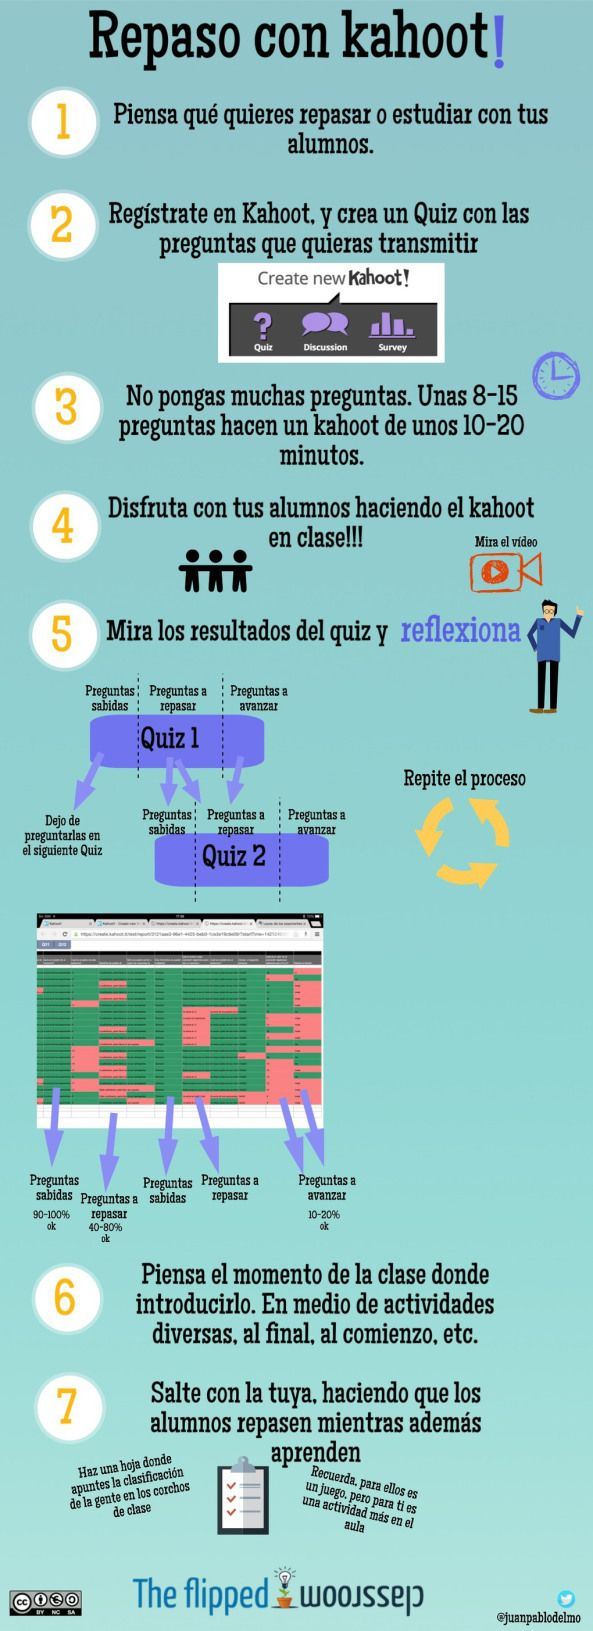 234 best educación images on Pinterest | Education, Educational ...